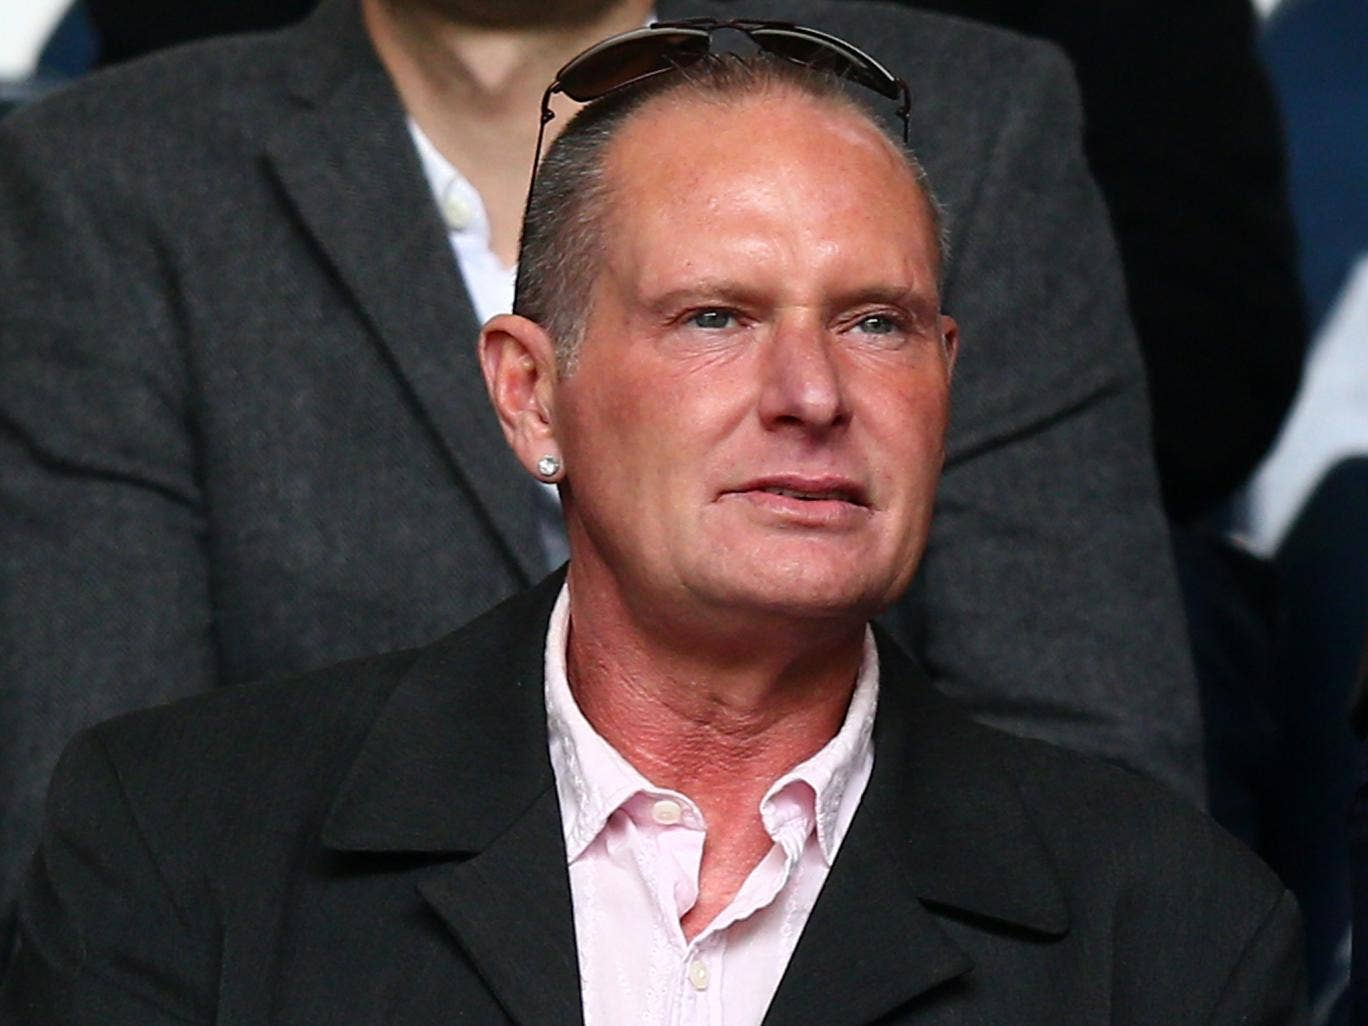 Gascoigne pictured at a football match in April last year